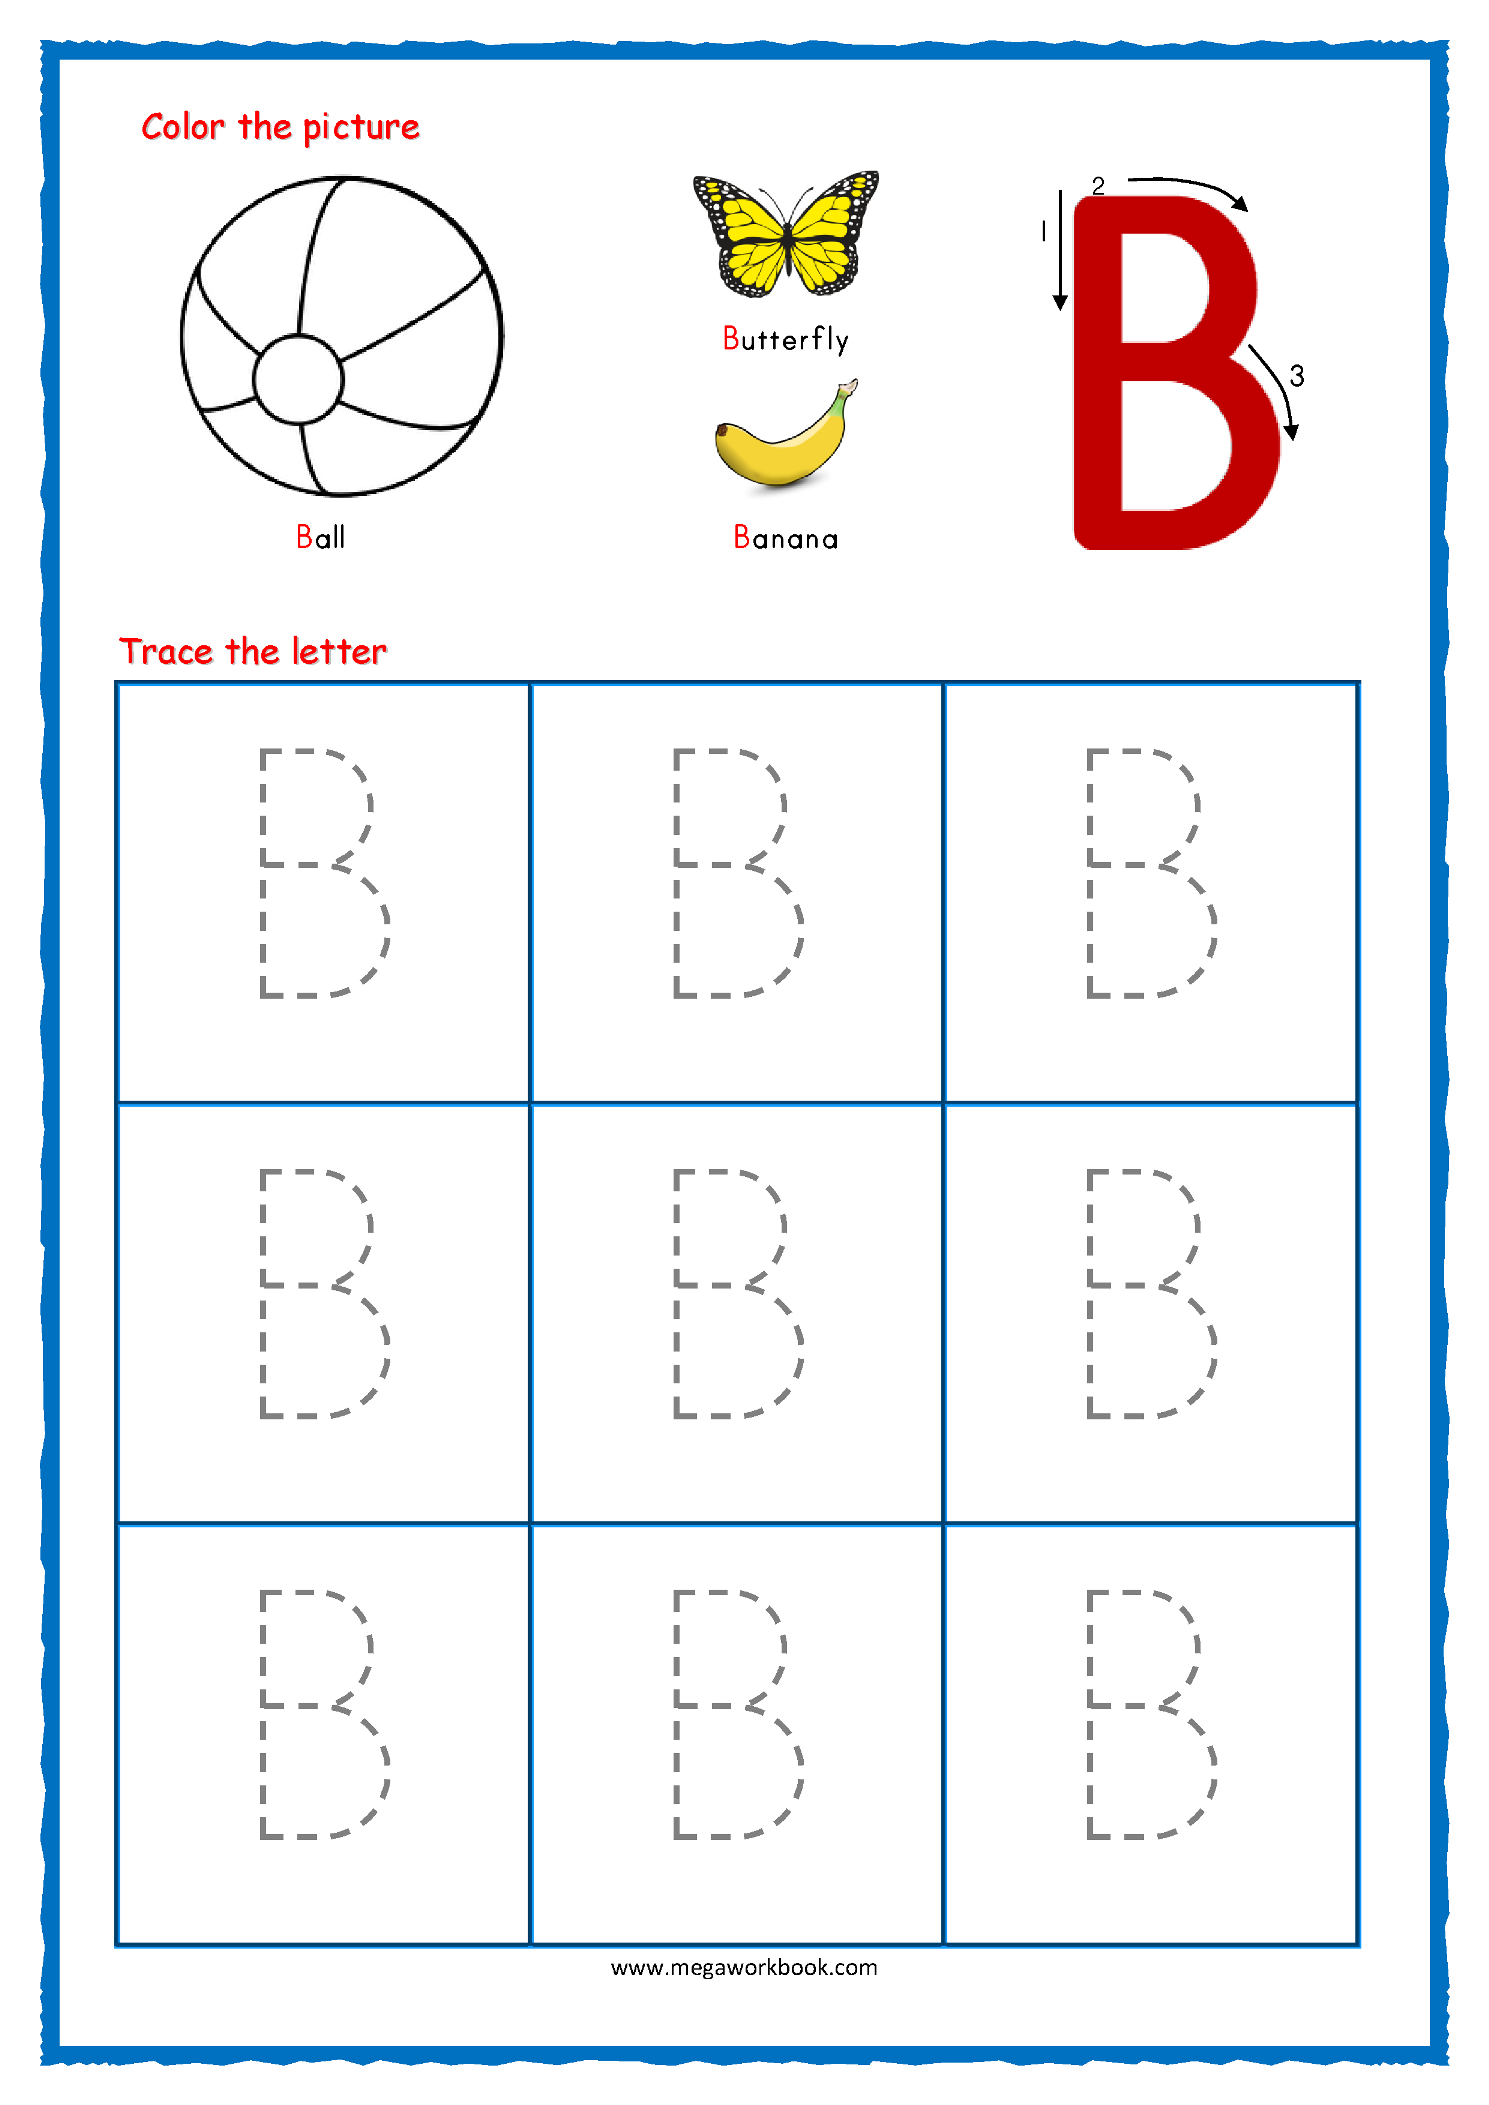 Capital_Letter_Tracing_With_Crayons_02_Alphabet_B Coloring regarding Alphabet Tracing Worksheets Pdf Download